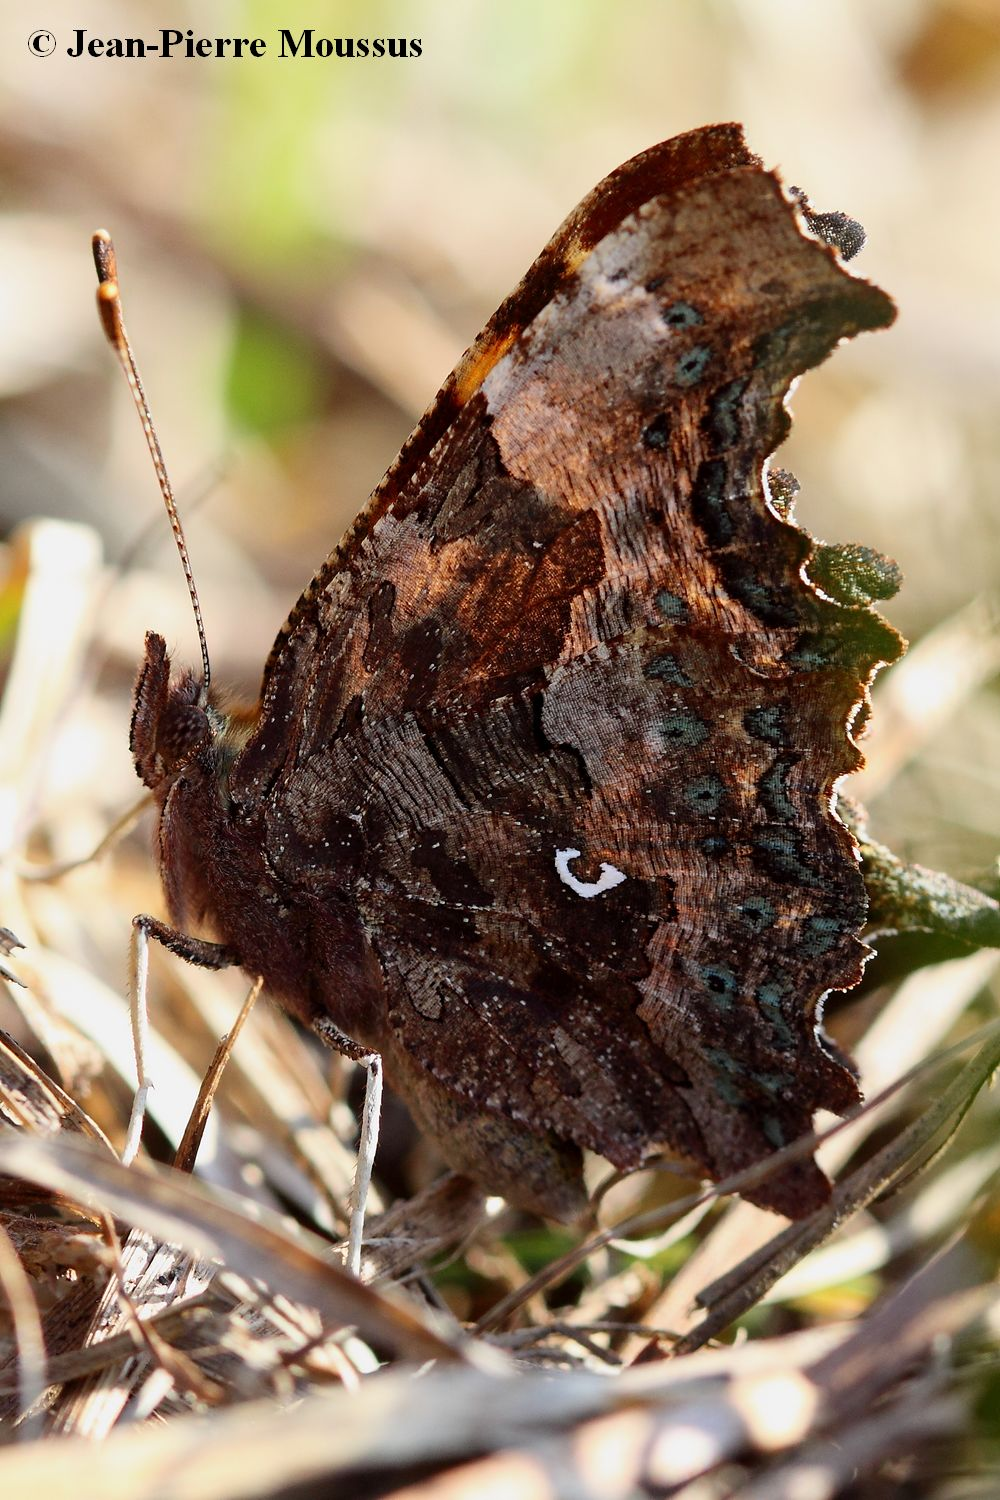 Robert_le_diable_polygonia_c_album_dessous